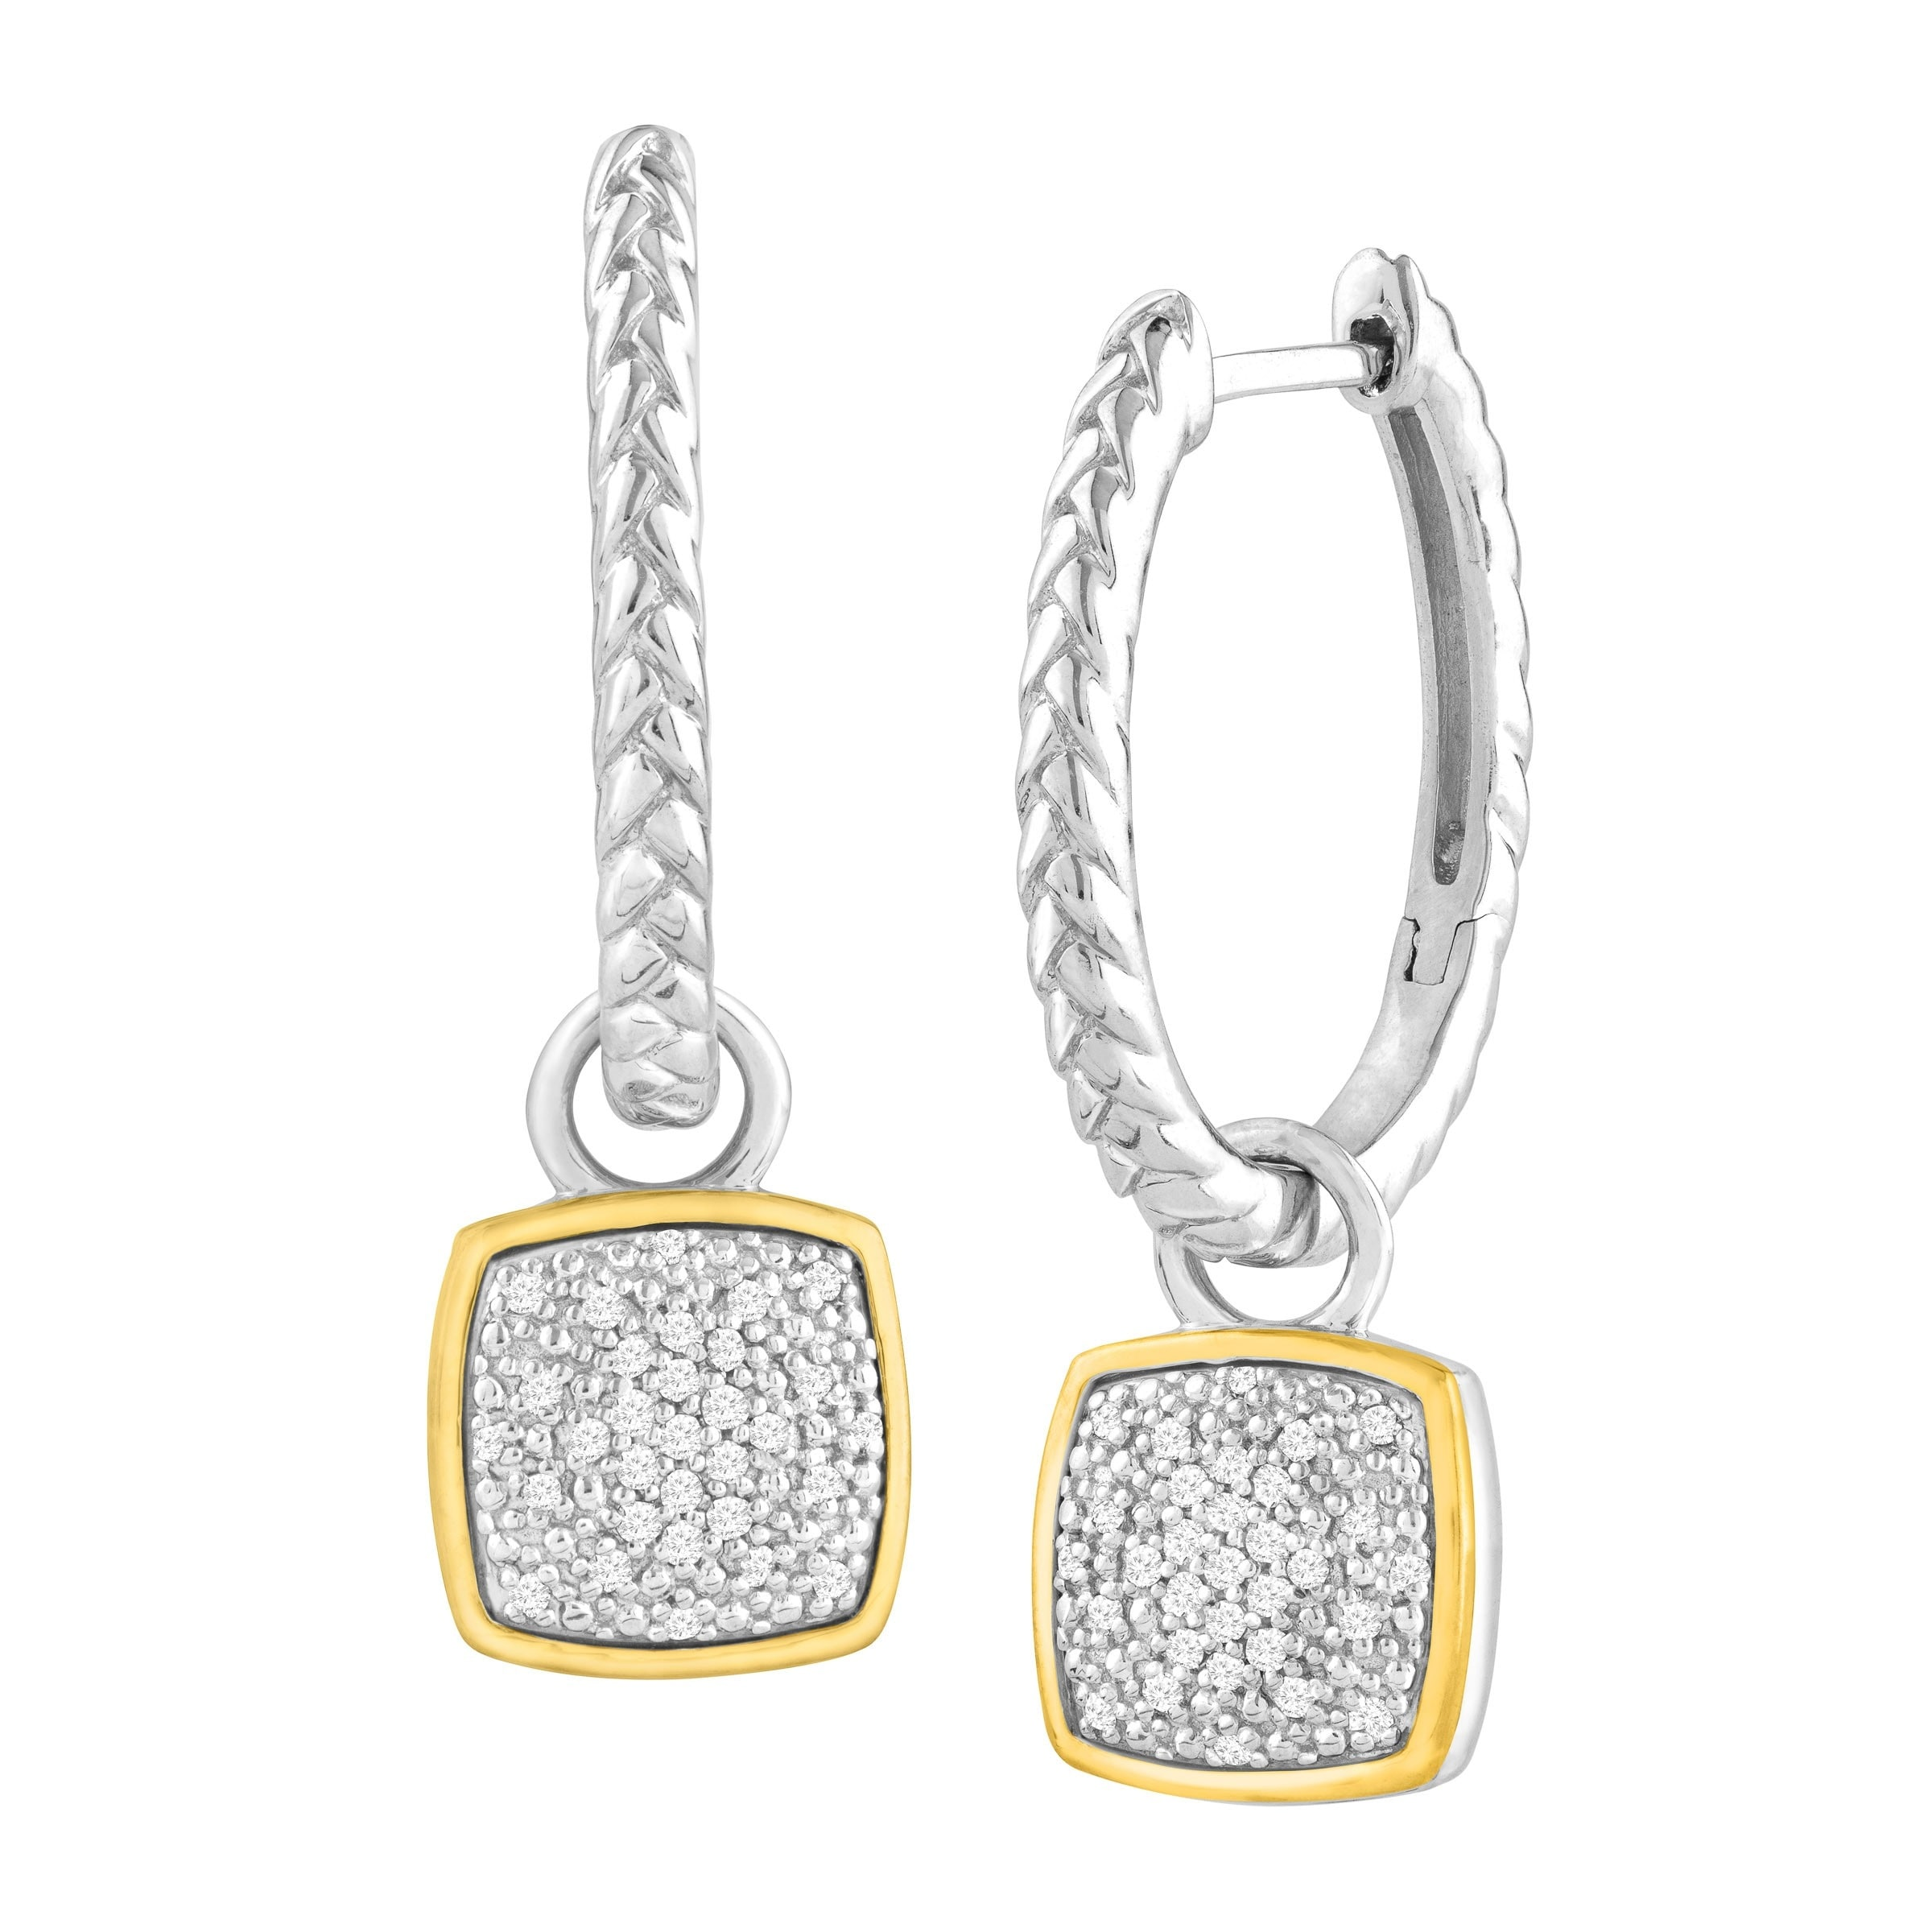 1 5 Ct Diamond Drop Hoop Earrings In Sterling Silver 14k Gold Free Shipping Today 20523744